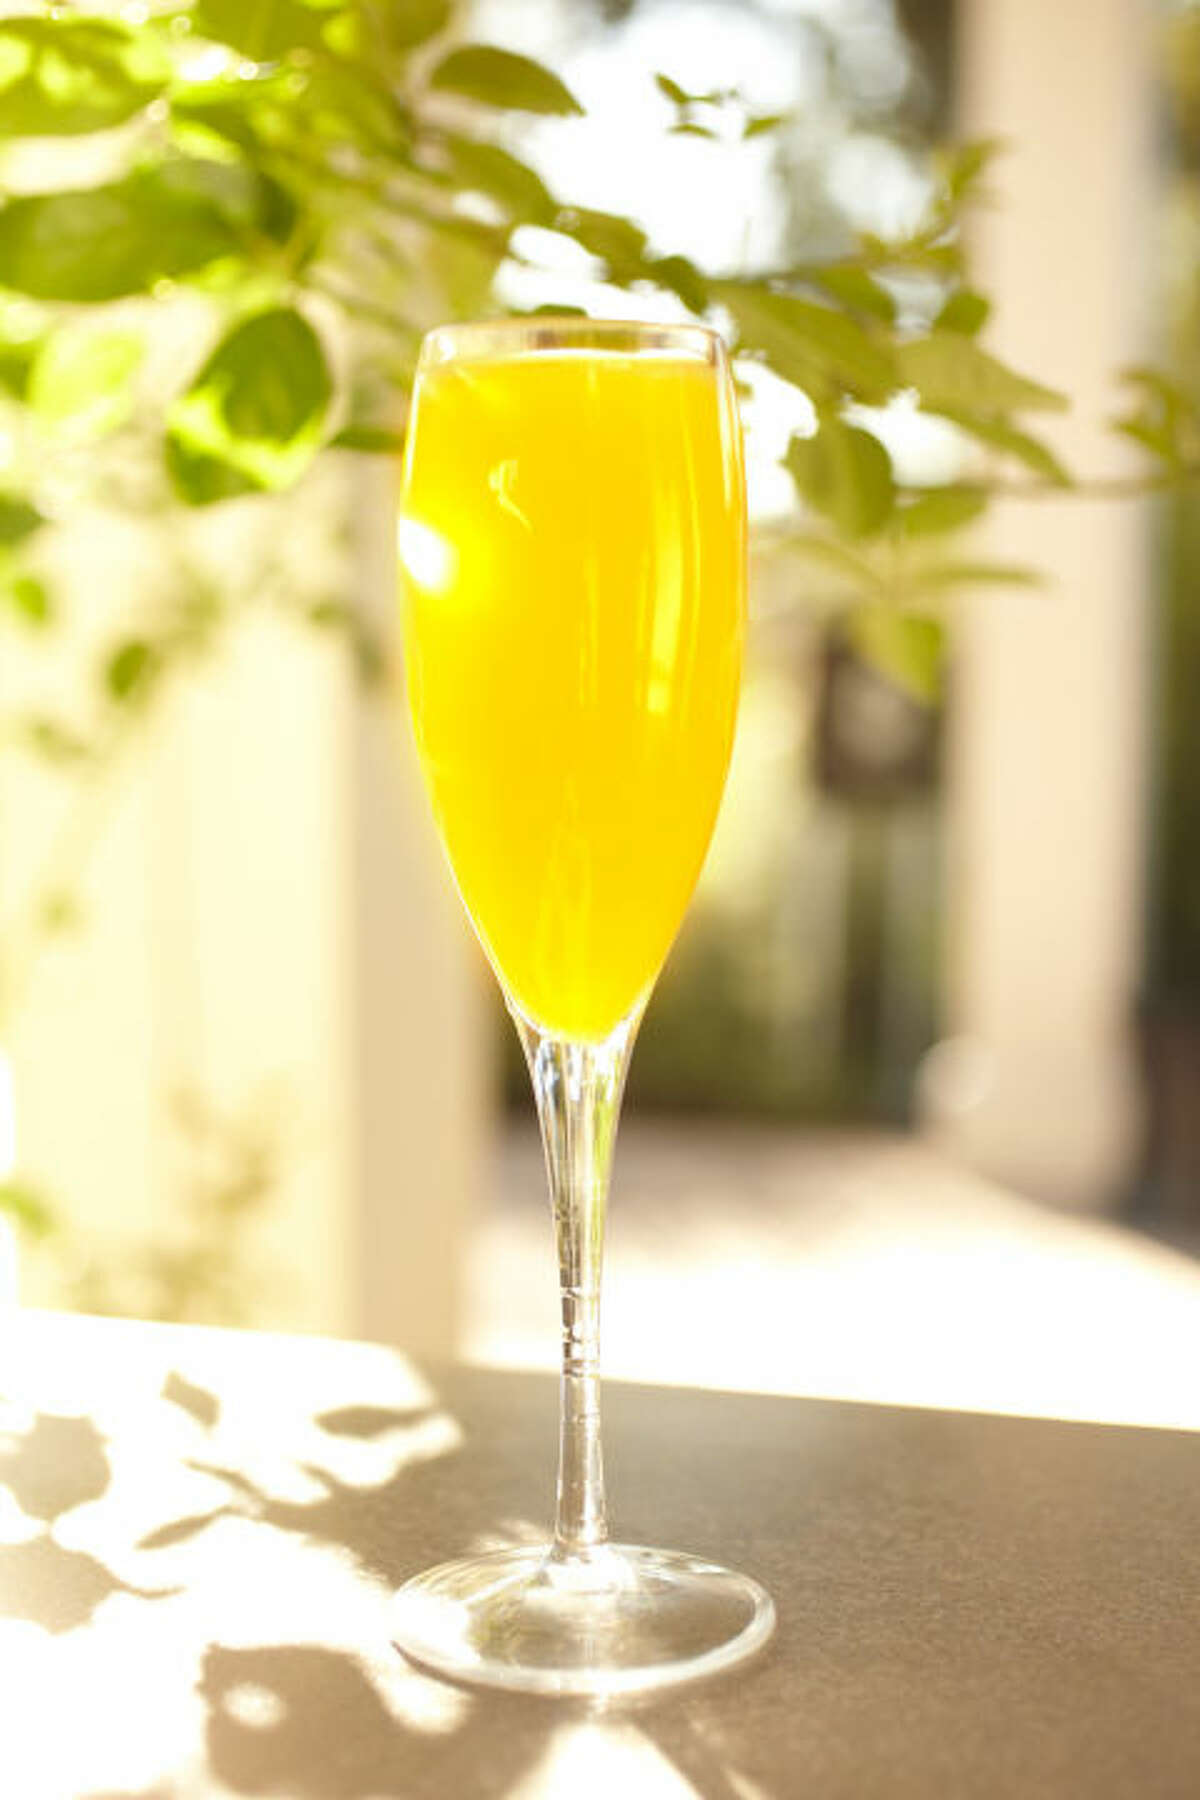 Get tipsy at a mimosa brunch: Once you're at the point where you can joke about missed curfews and silly fights, you can also afford to get a little tipsy together (drink responsibly!) and dish on the latest neighborhood gossip ... or even the cute waiter. Another round, s'il vous plait!